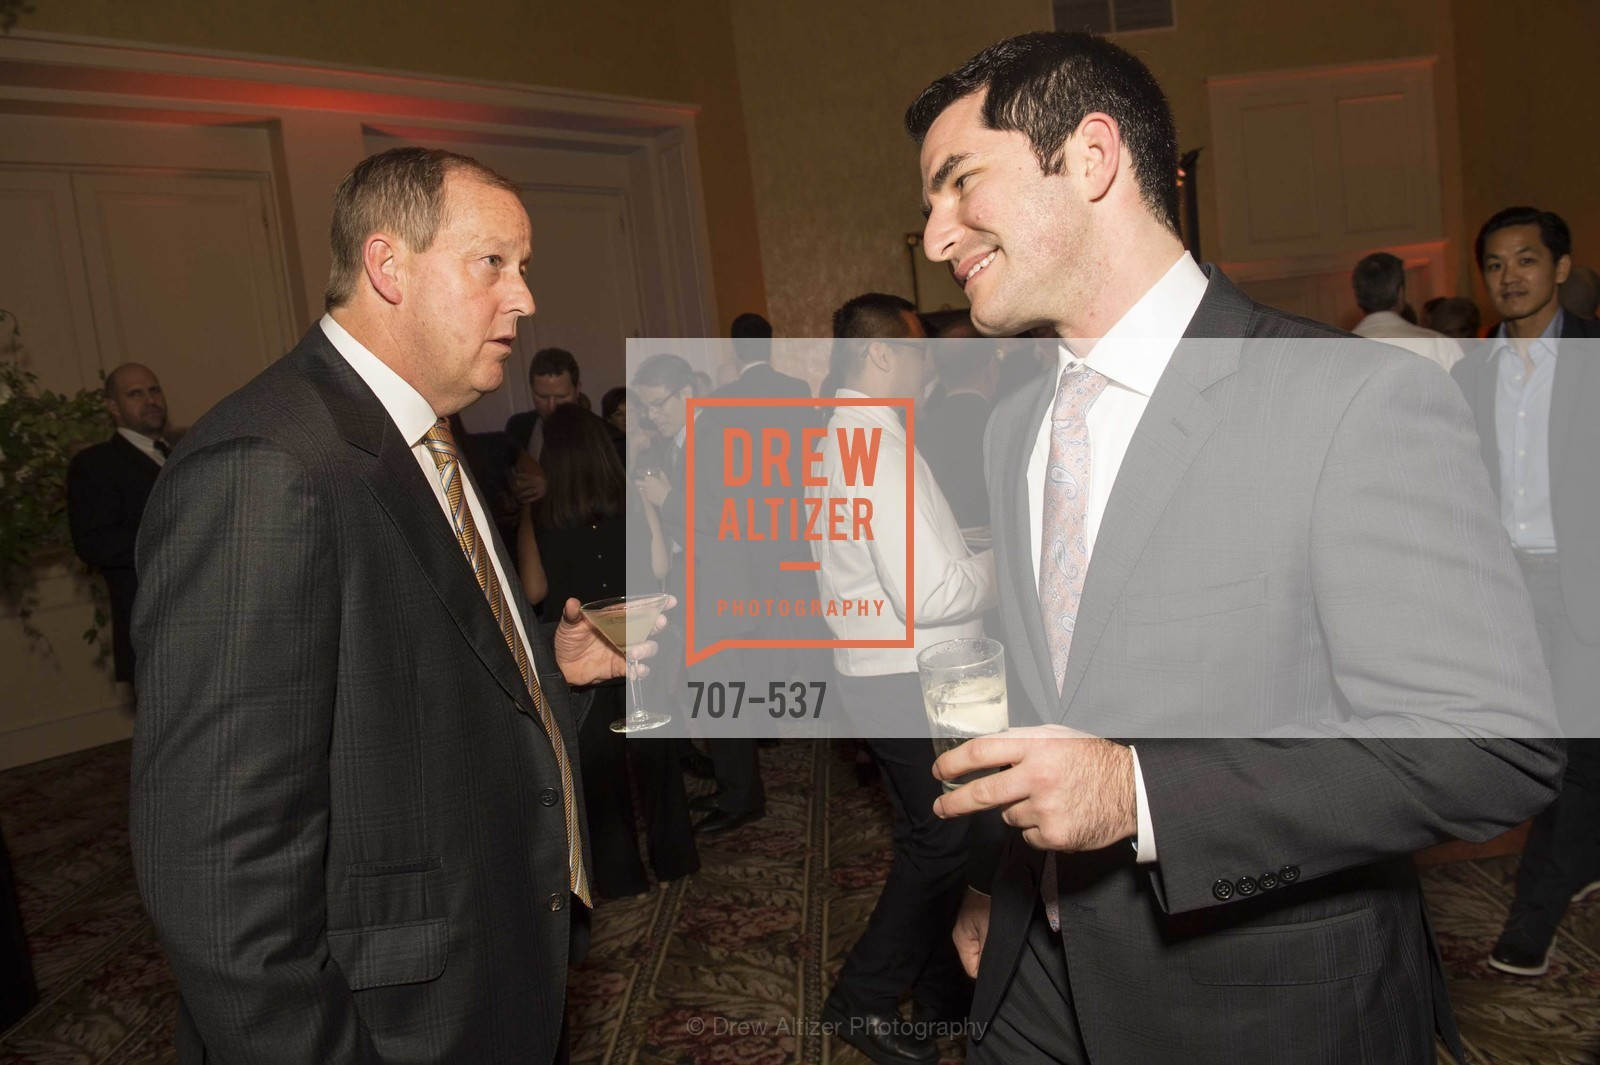 Michael Rosenfeld, Sam Aperbach, TOP OF THE MARK'S 75TH Anniversary Party, US, November 7th, 2014,Drew Altizer, Drew Altizer Photography, full-service agency, private events, San Francisco photographer, photographer california